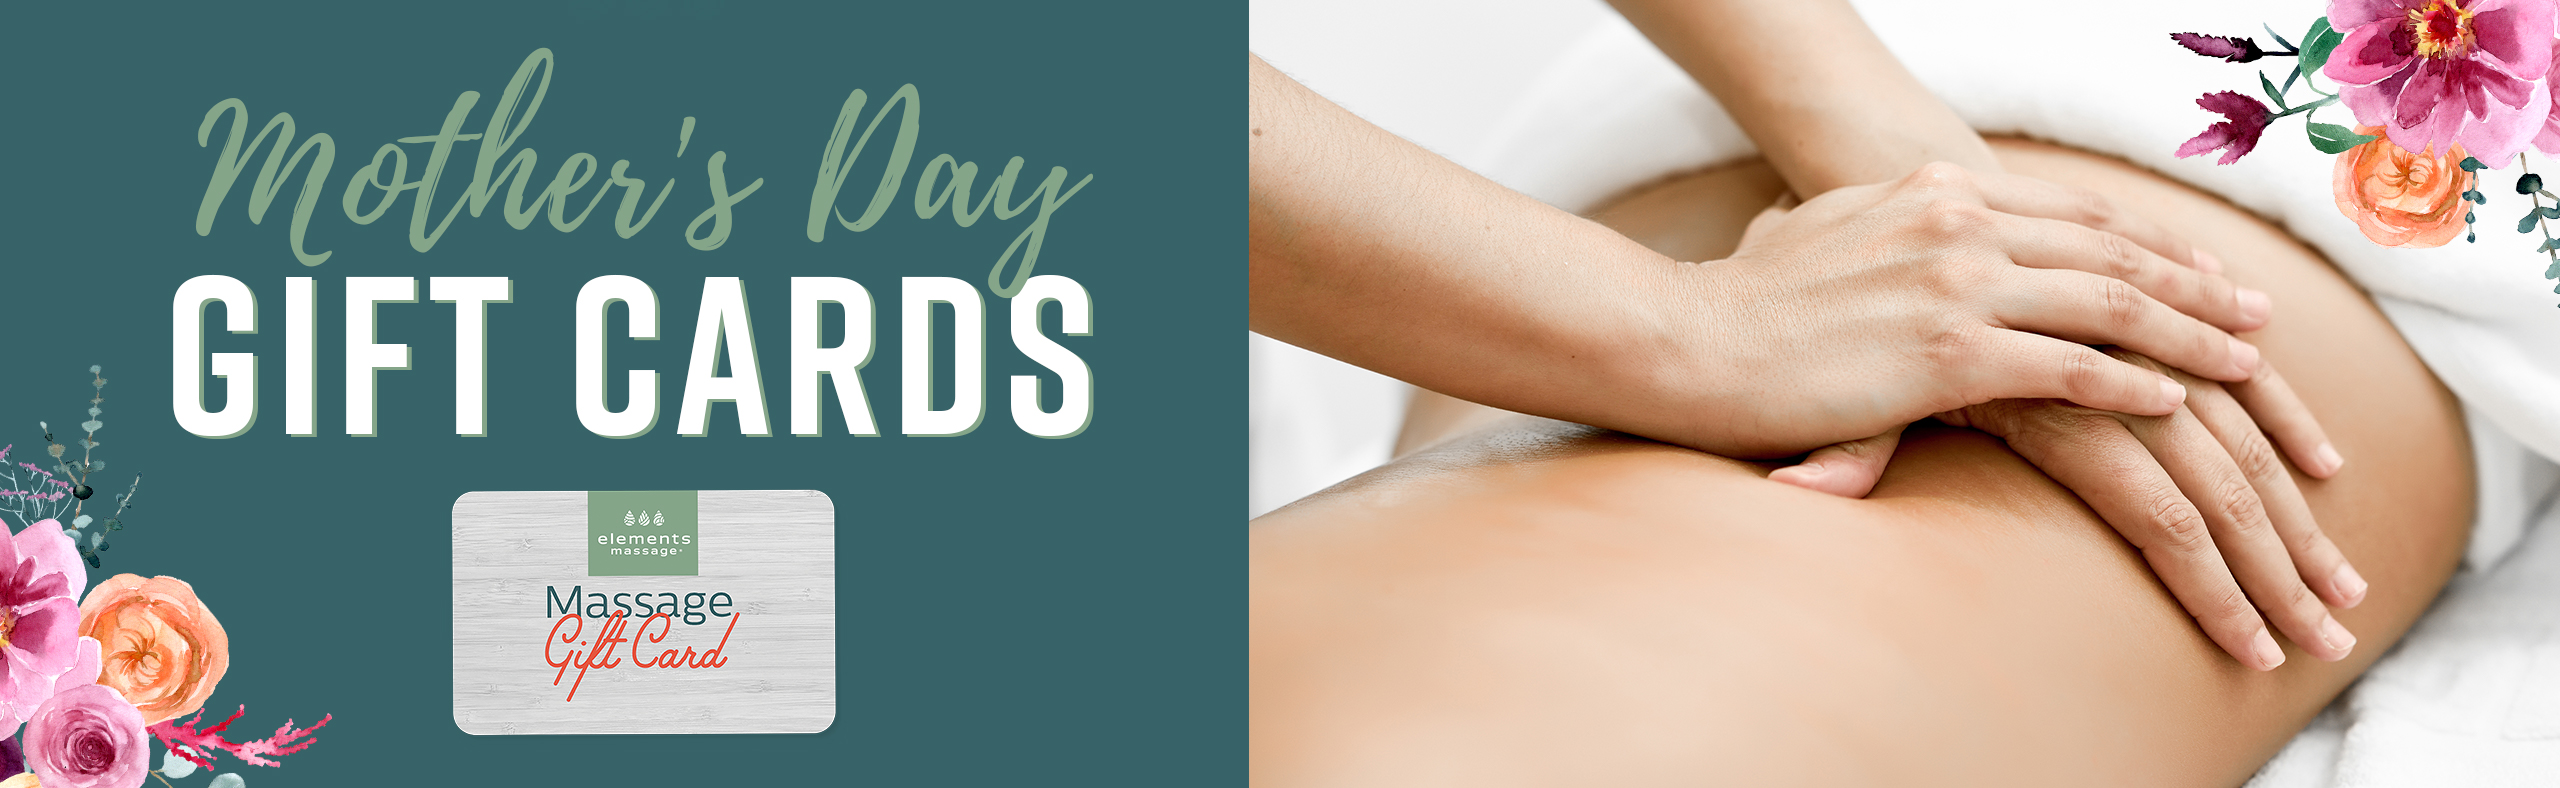 Mother's Day Gift Cards at Elements Massage